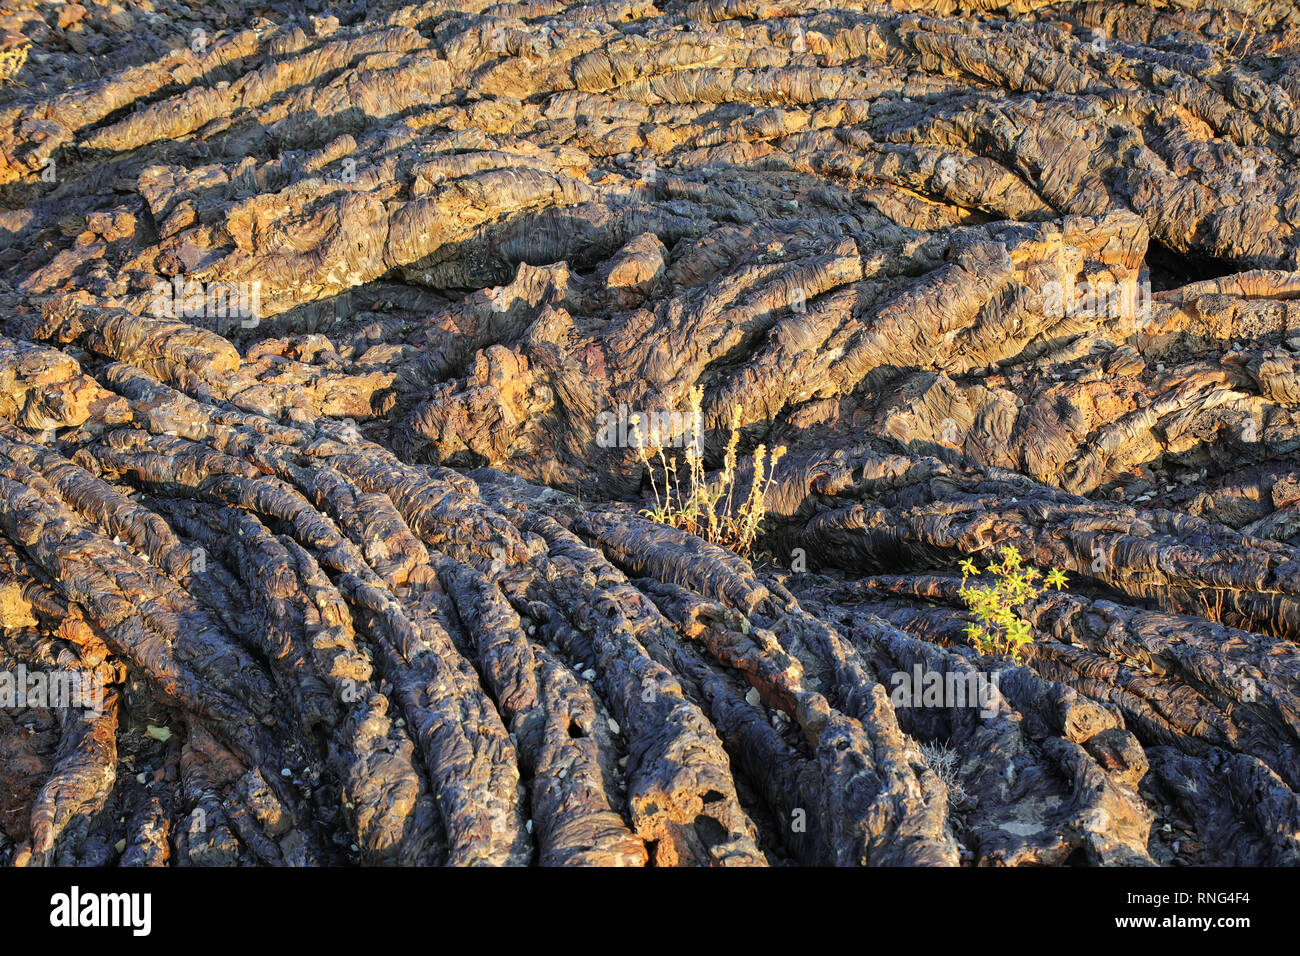 Lava flow field at North Crater Flow Trail, Craters of the Moon National Monument, Idaho, USA. - Stock Image